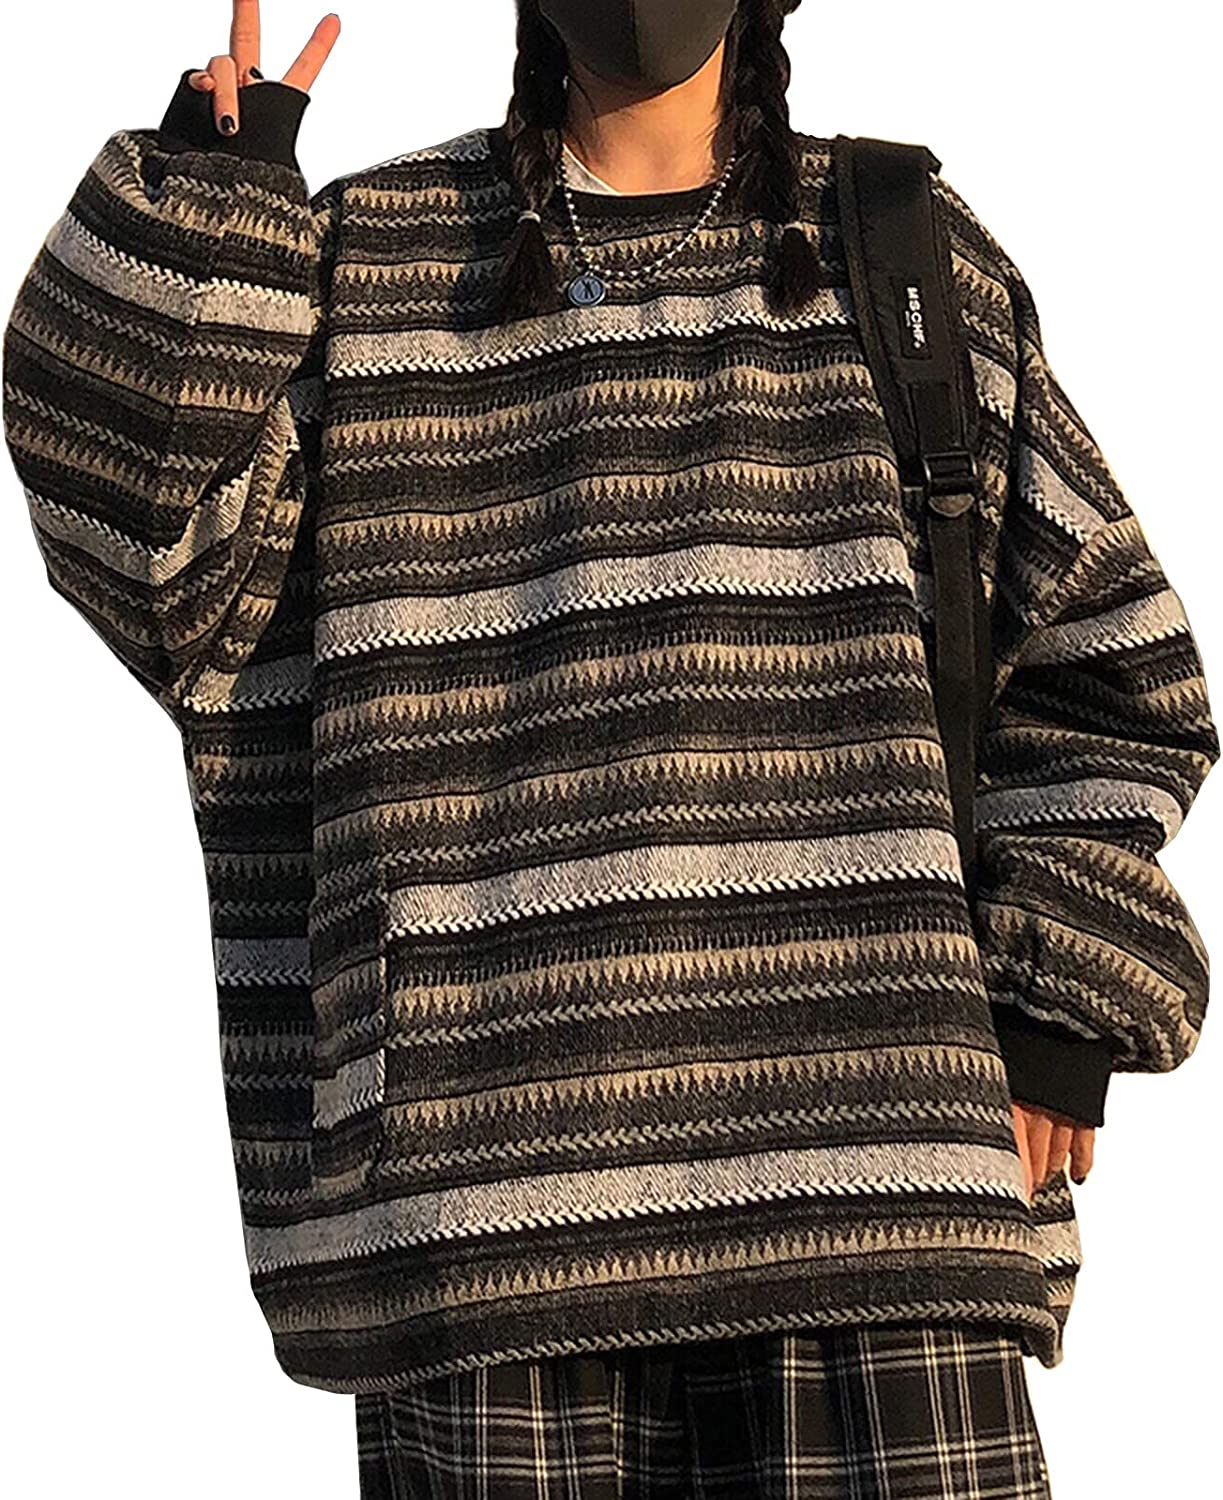 quality assurance 55% OFF Women Oversized Long Sleeve Striped Jumpe Sweater Casual Hip Hop